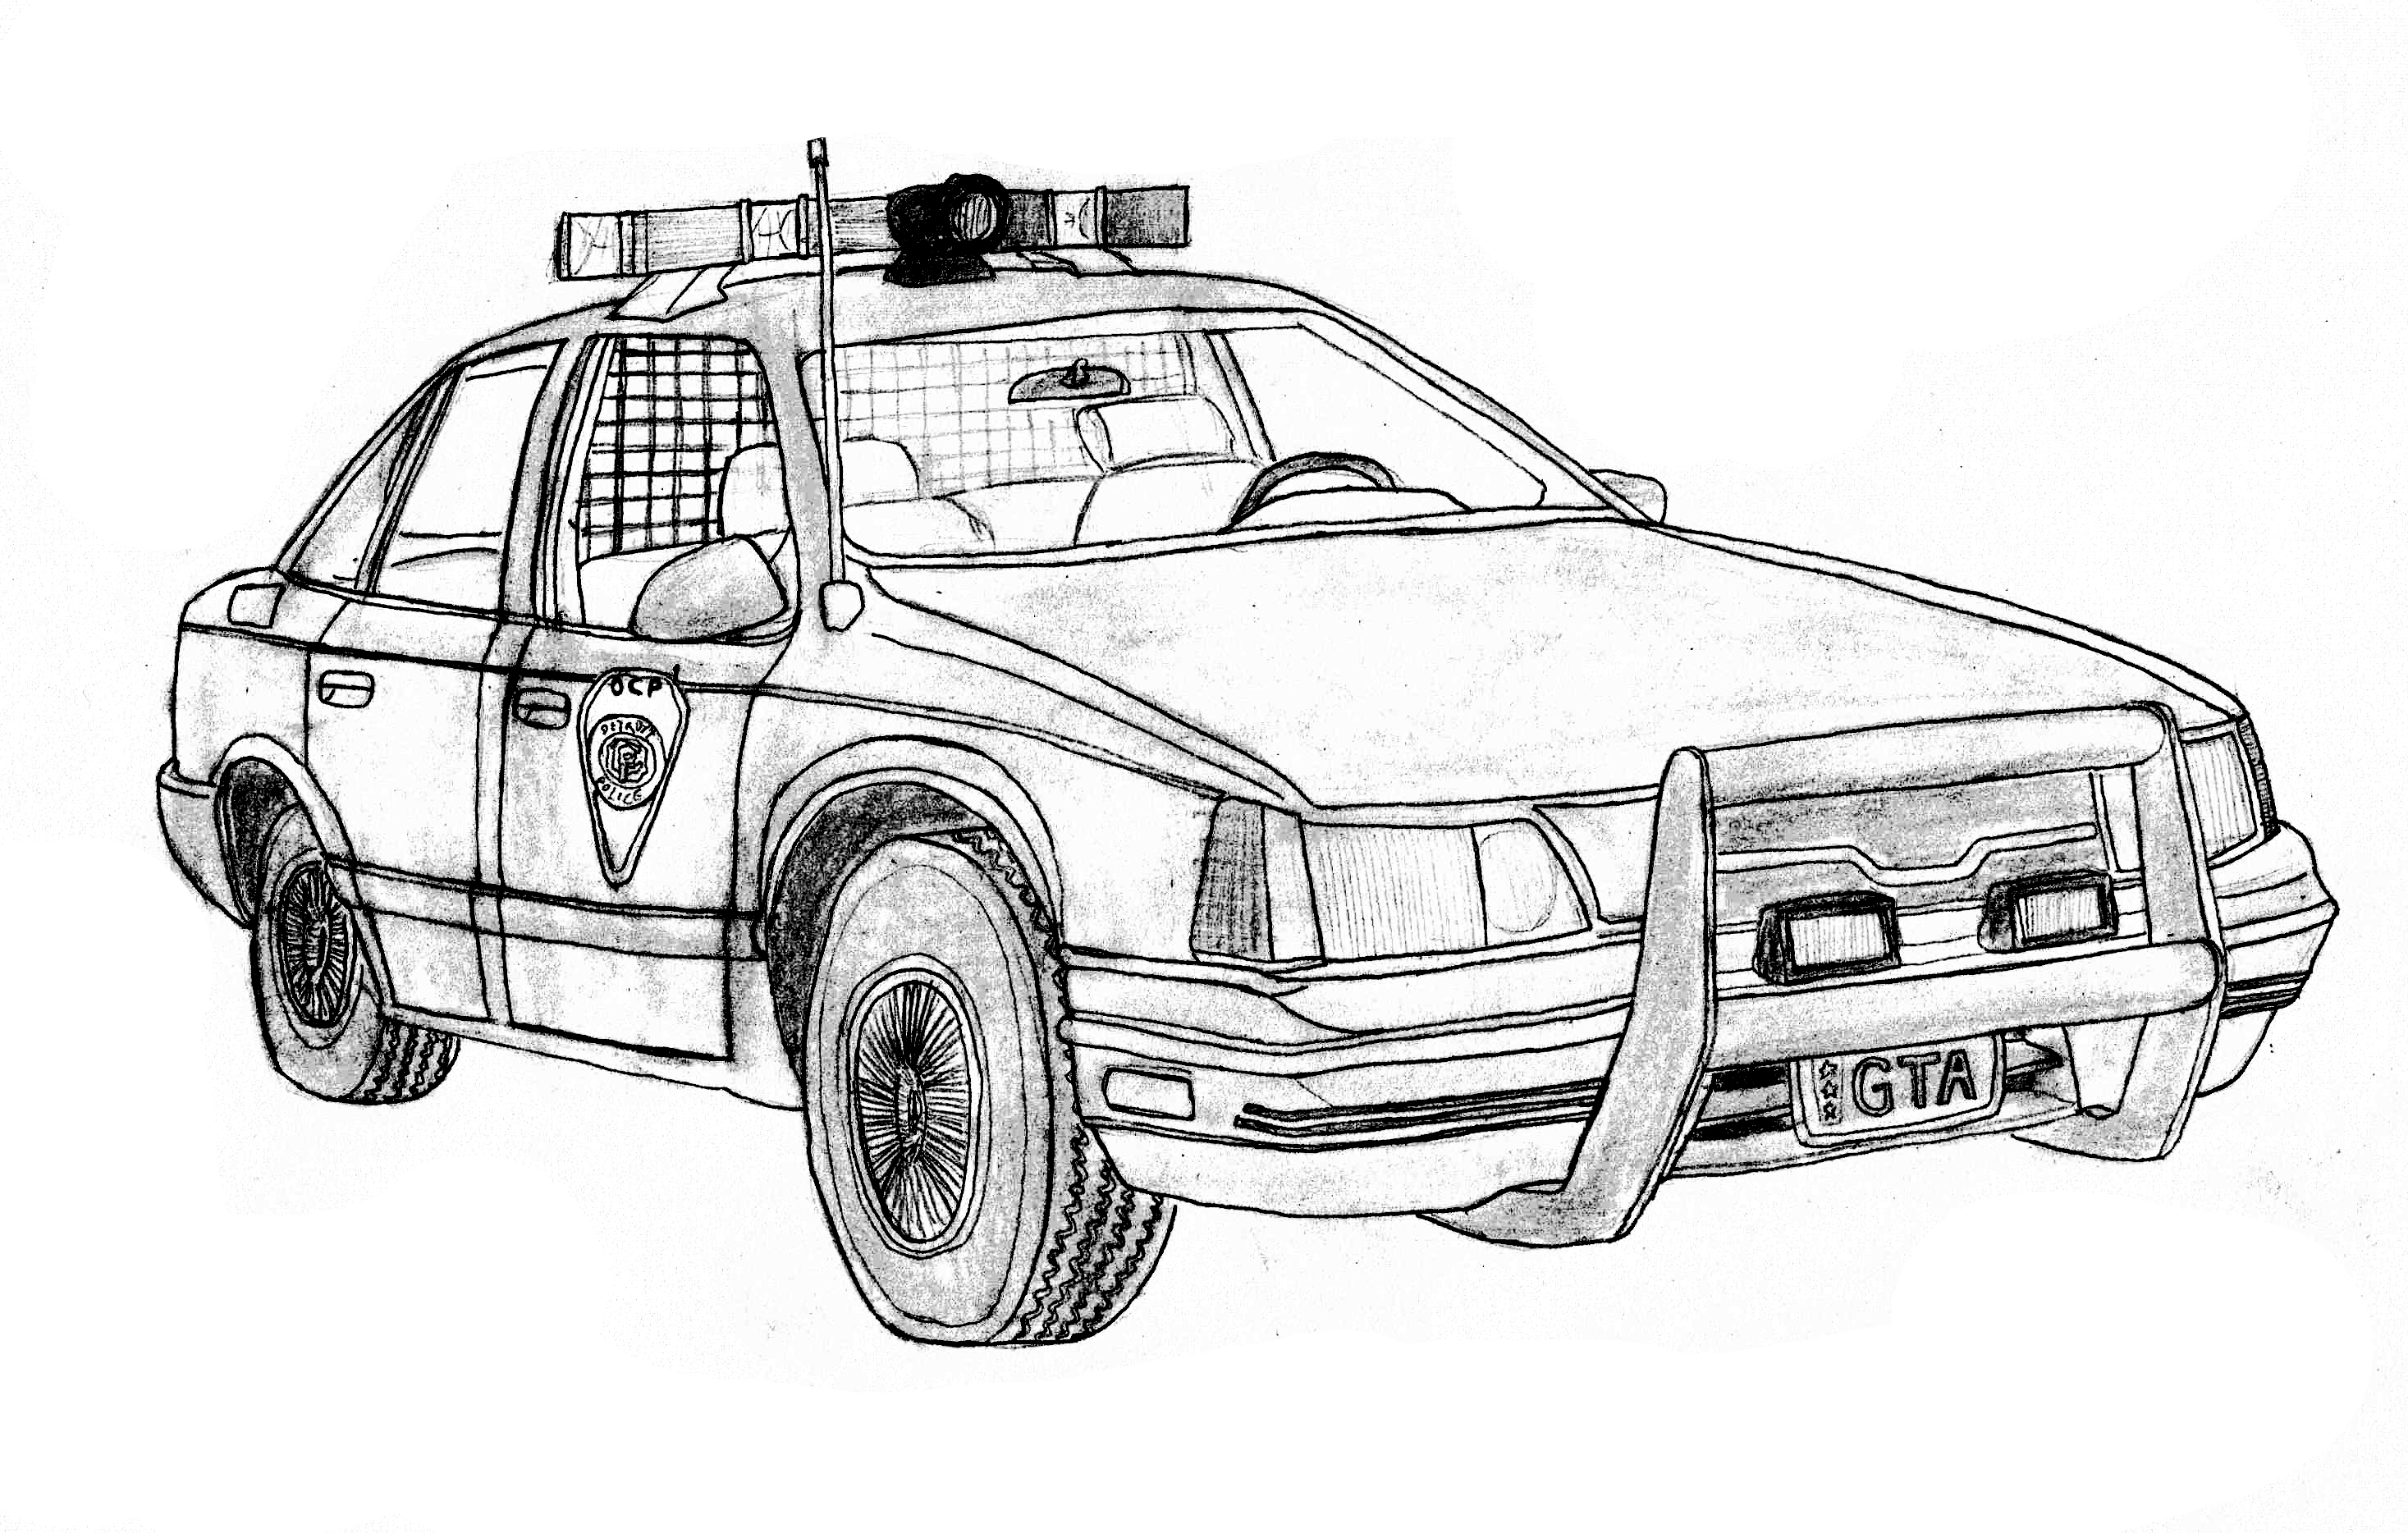 robocop ford taurus police car by dandelo1 police car coloring pages - Police Car Coloring Pages